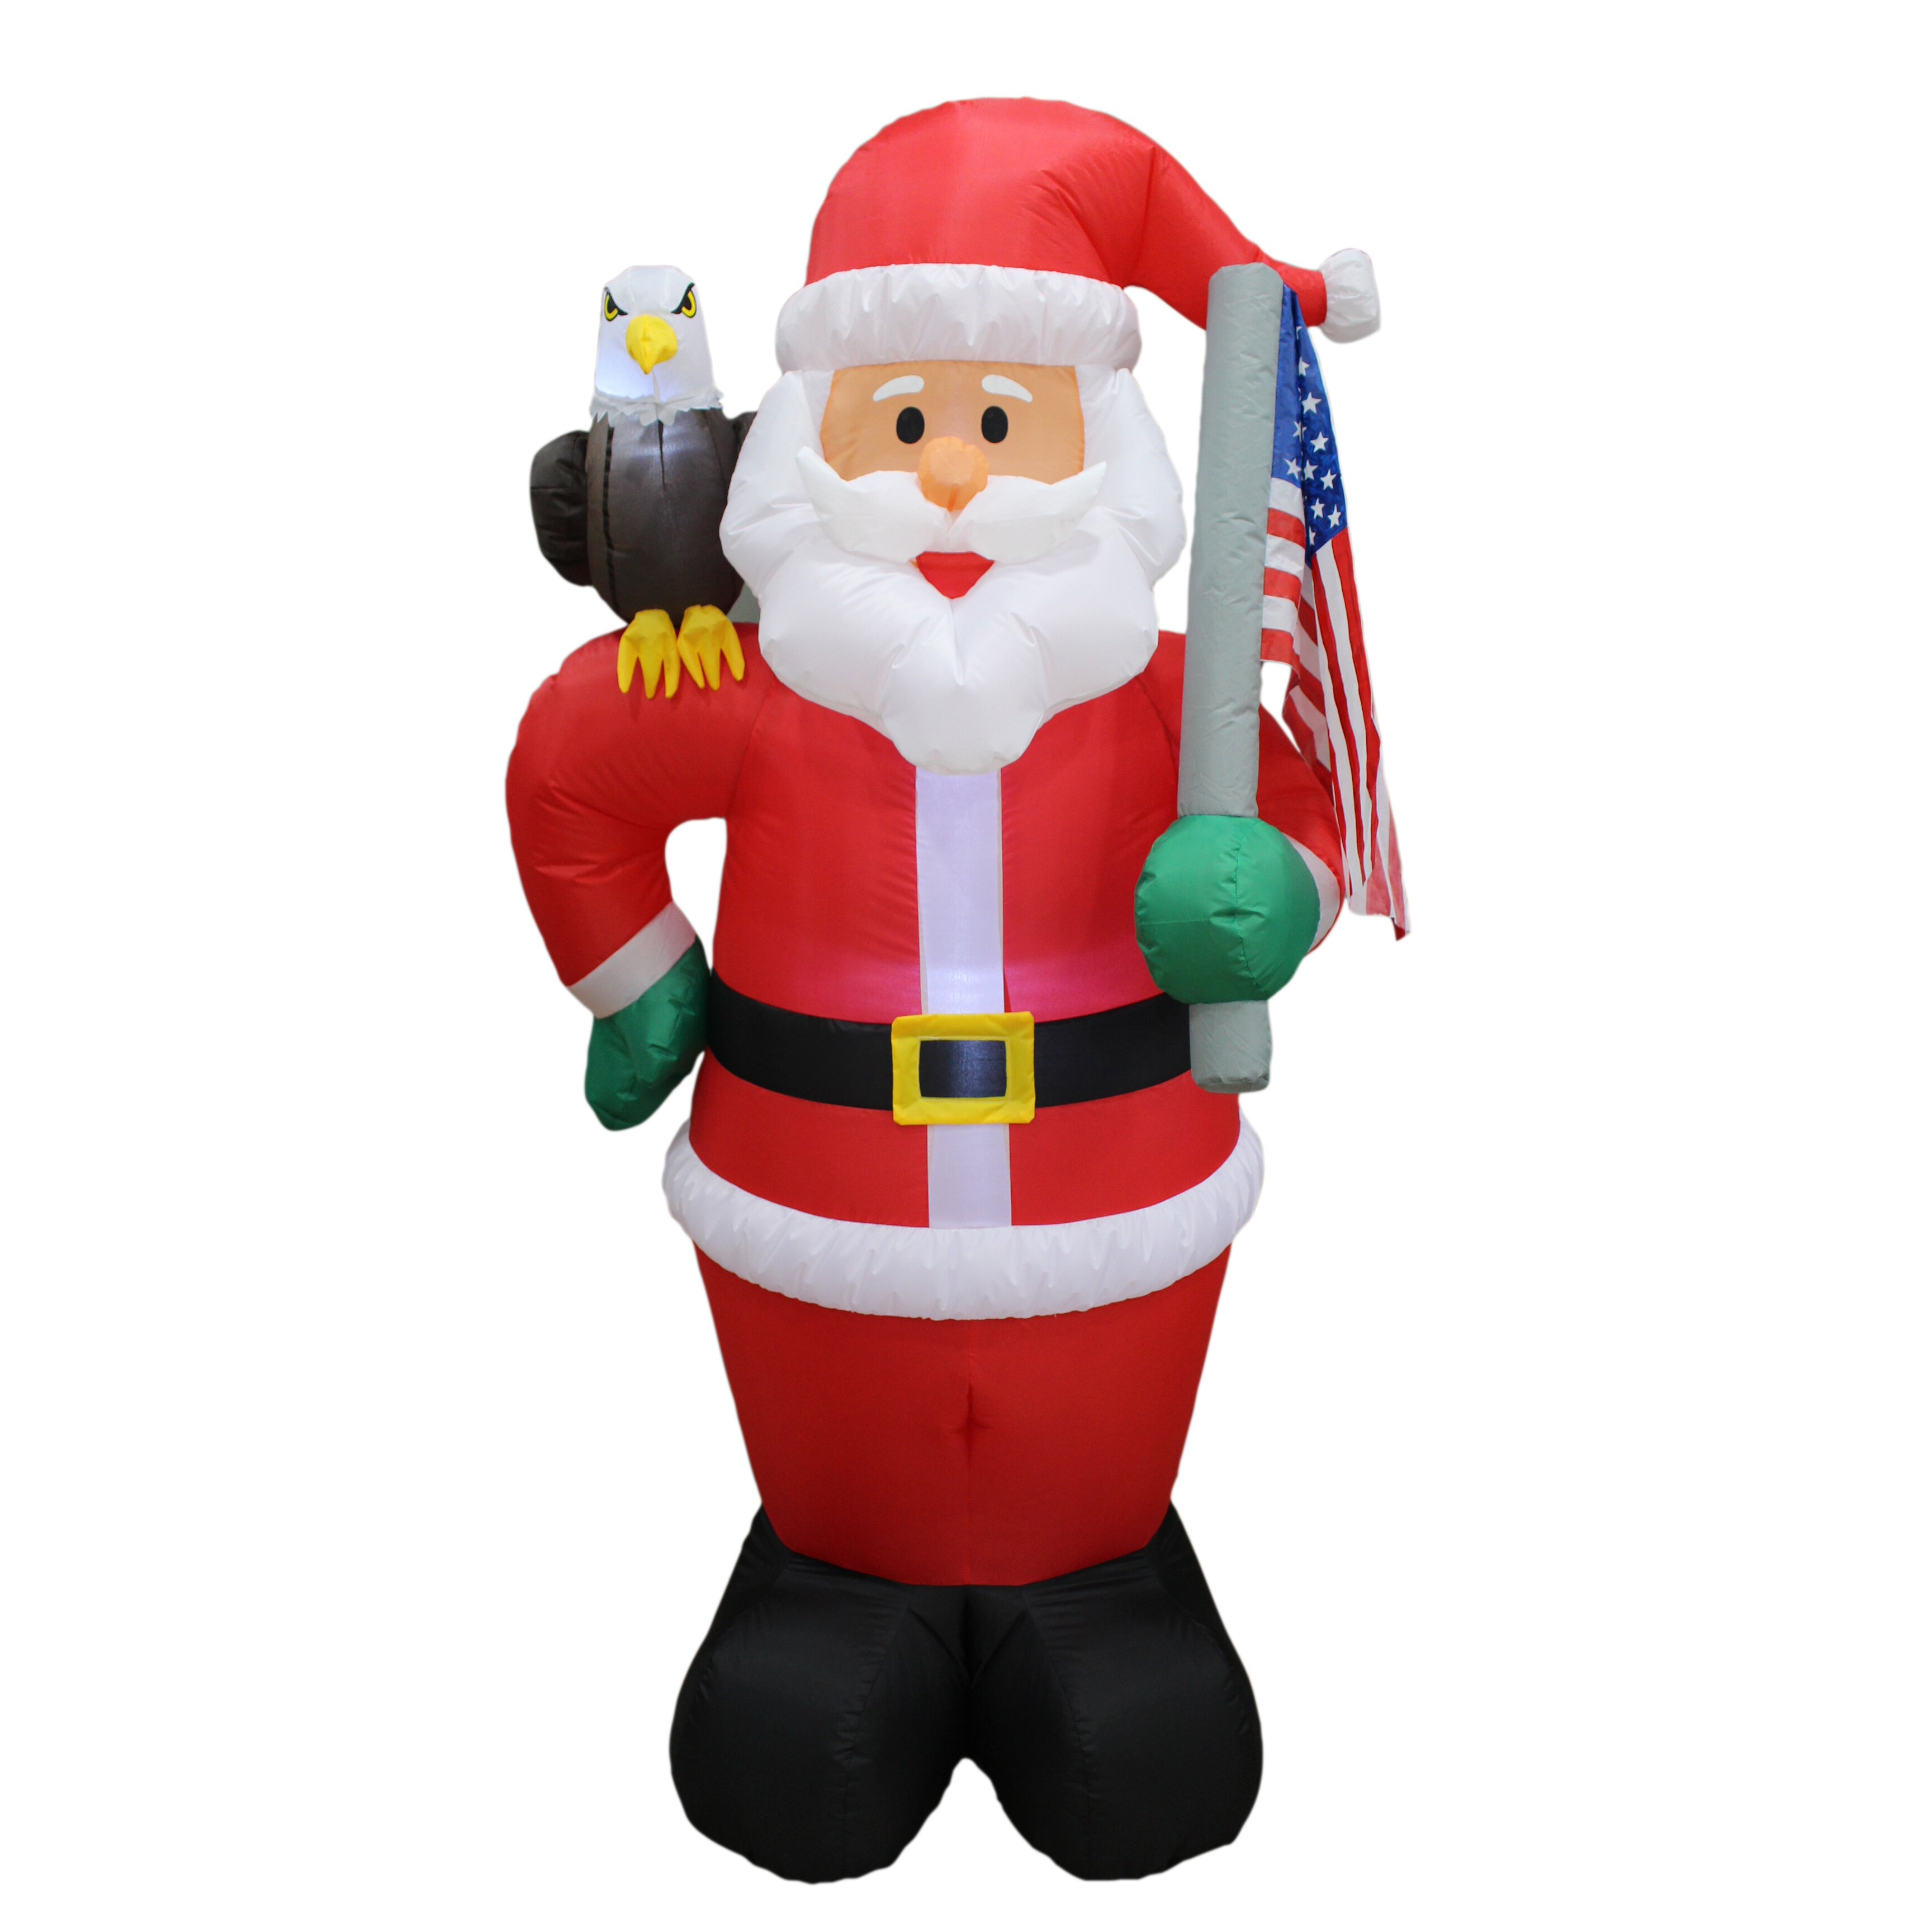 Bzb goods christmas inflatable patriotic santa claus with